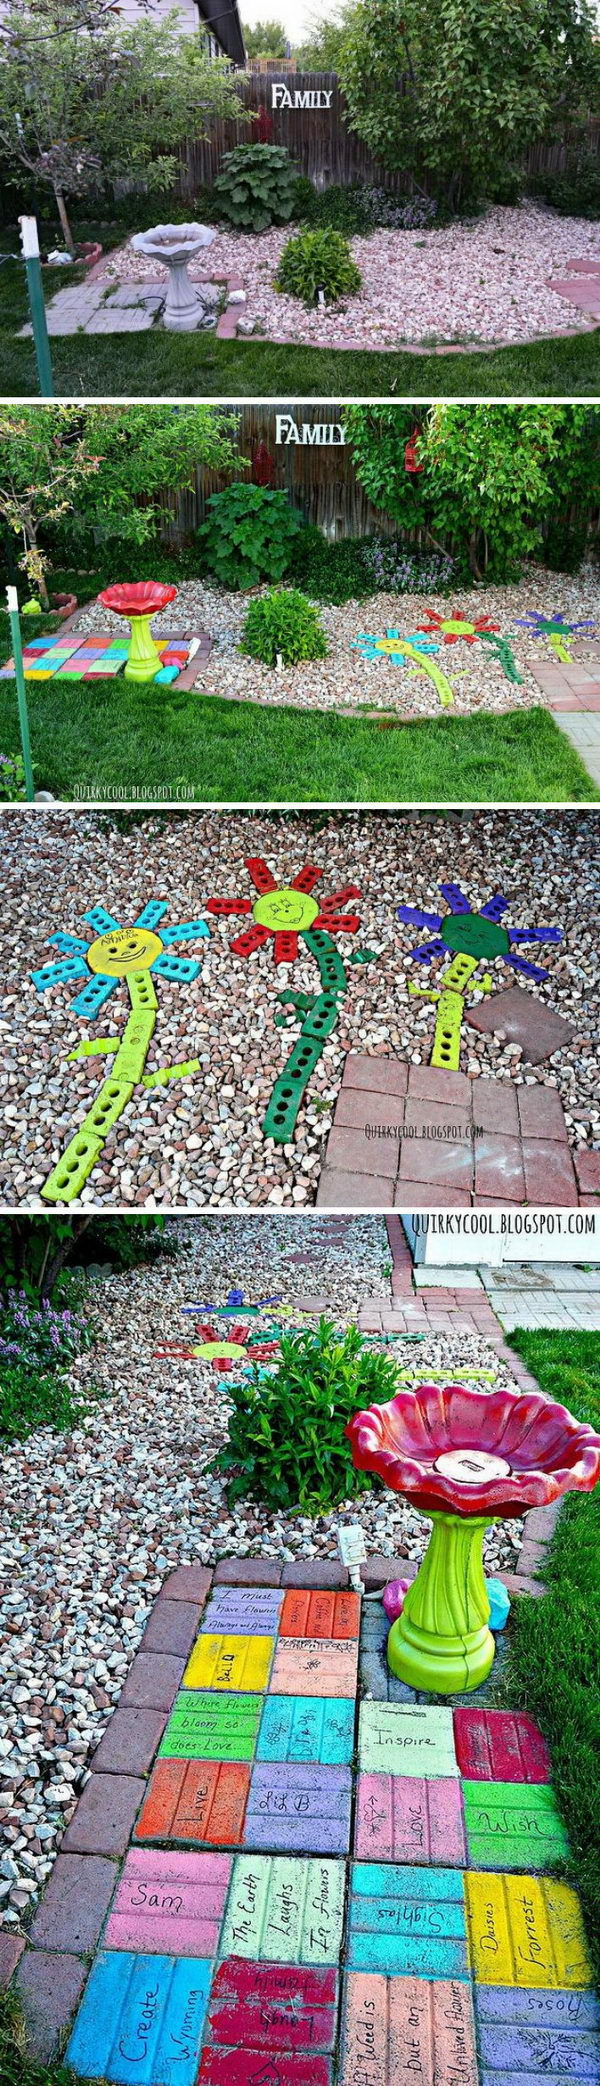 Brighten Up a Garden with Painted and Personalized Pavers.